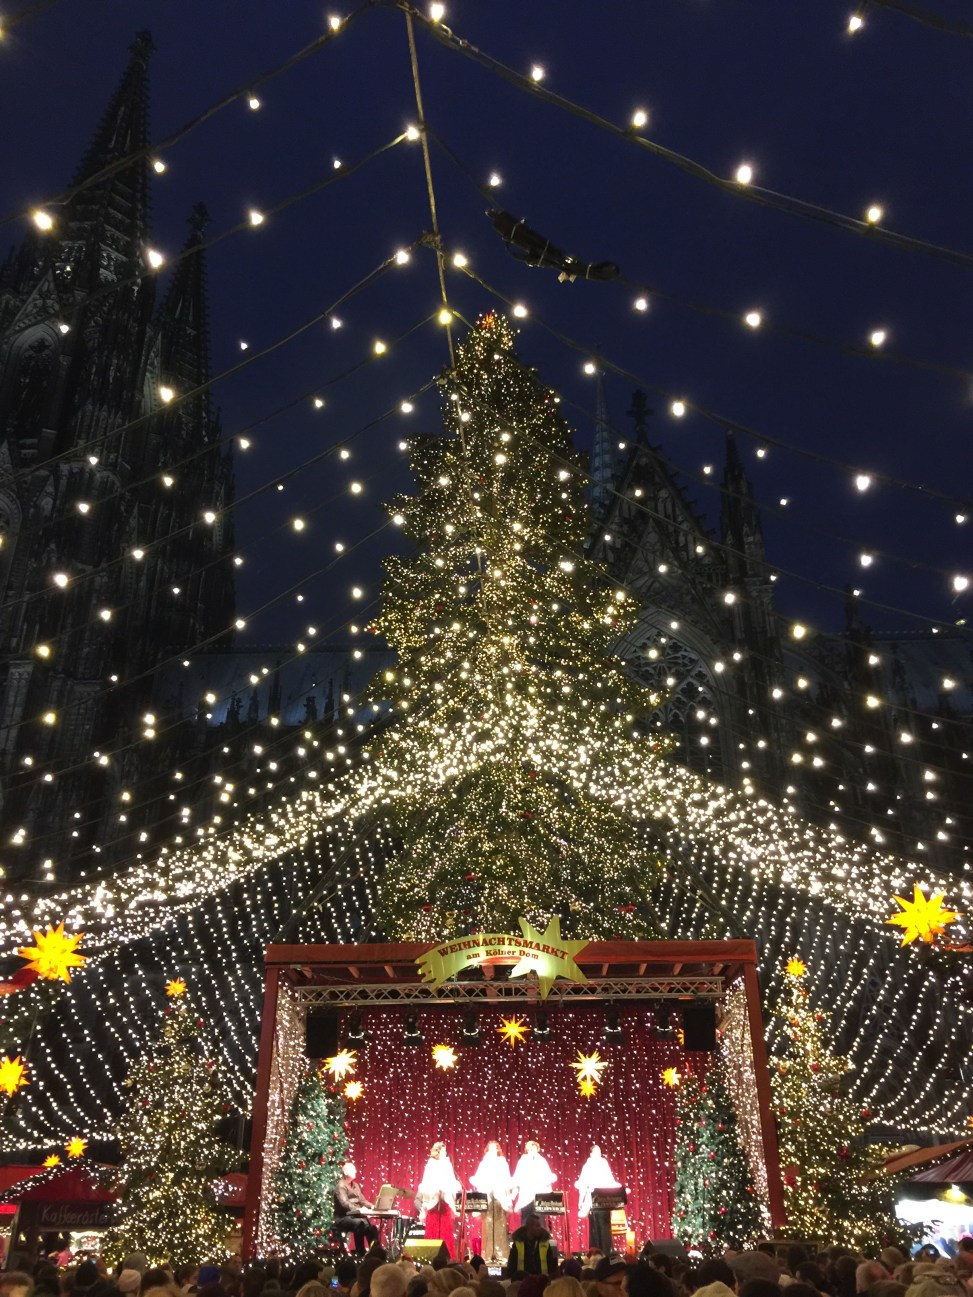 Christmas market in Cologne, Germany.